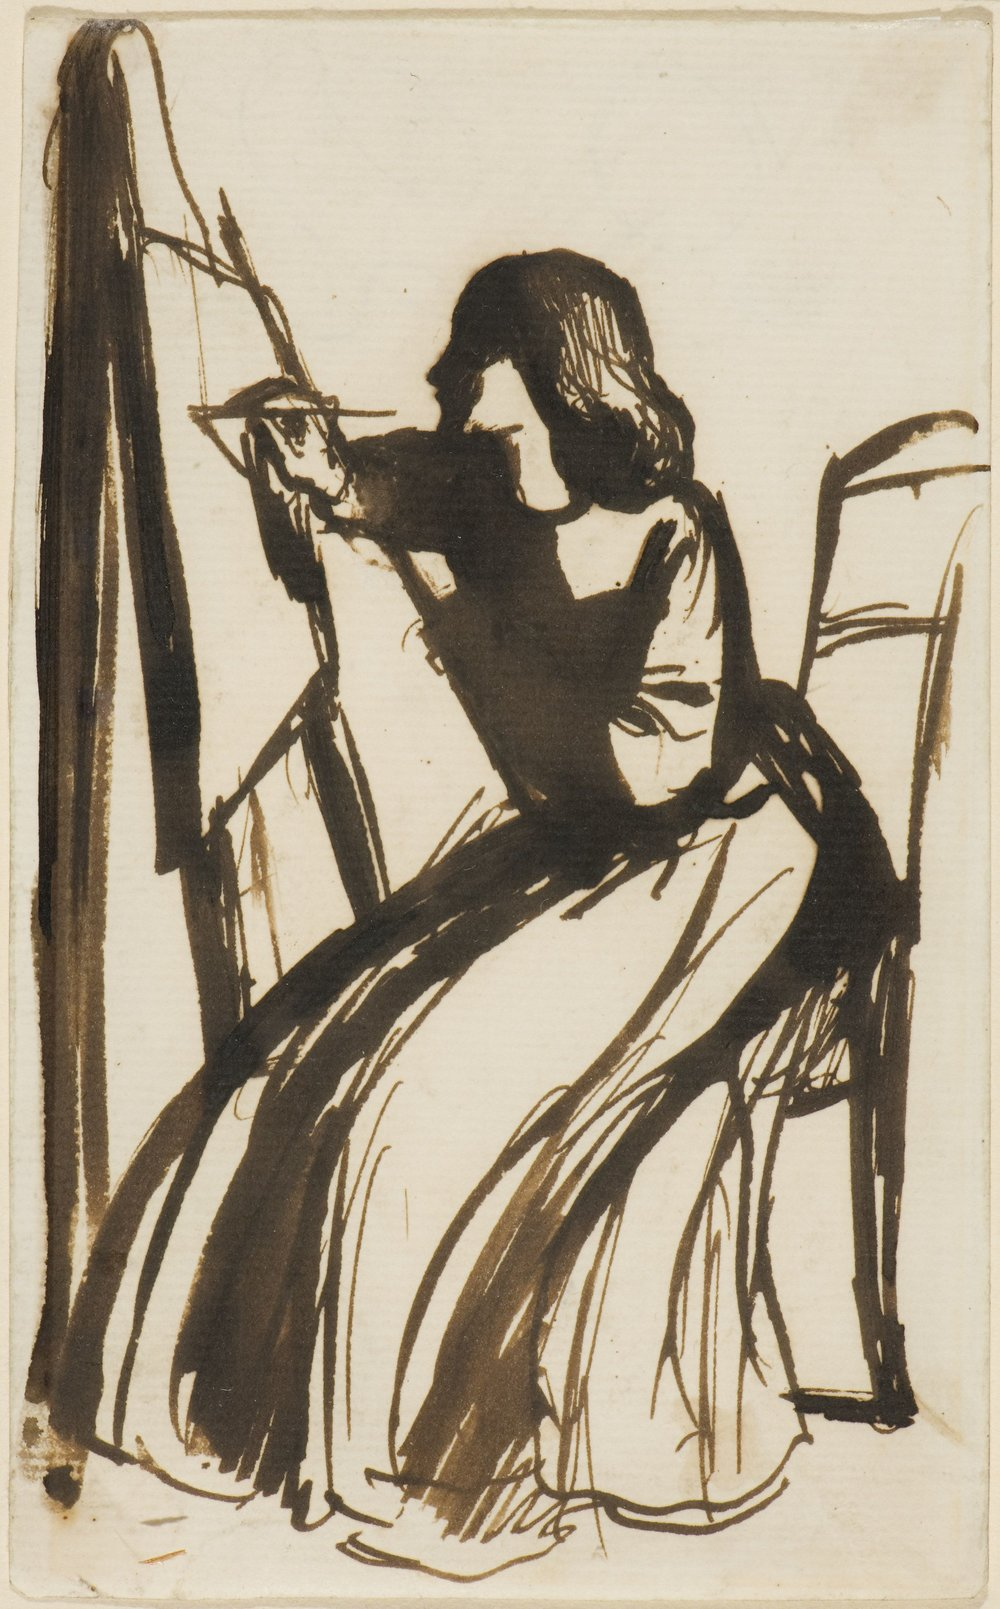 Rossetti's pen and ink sketch of Lizzie Siddal at her easel. She later became his wife.